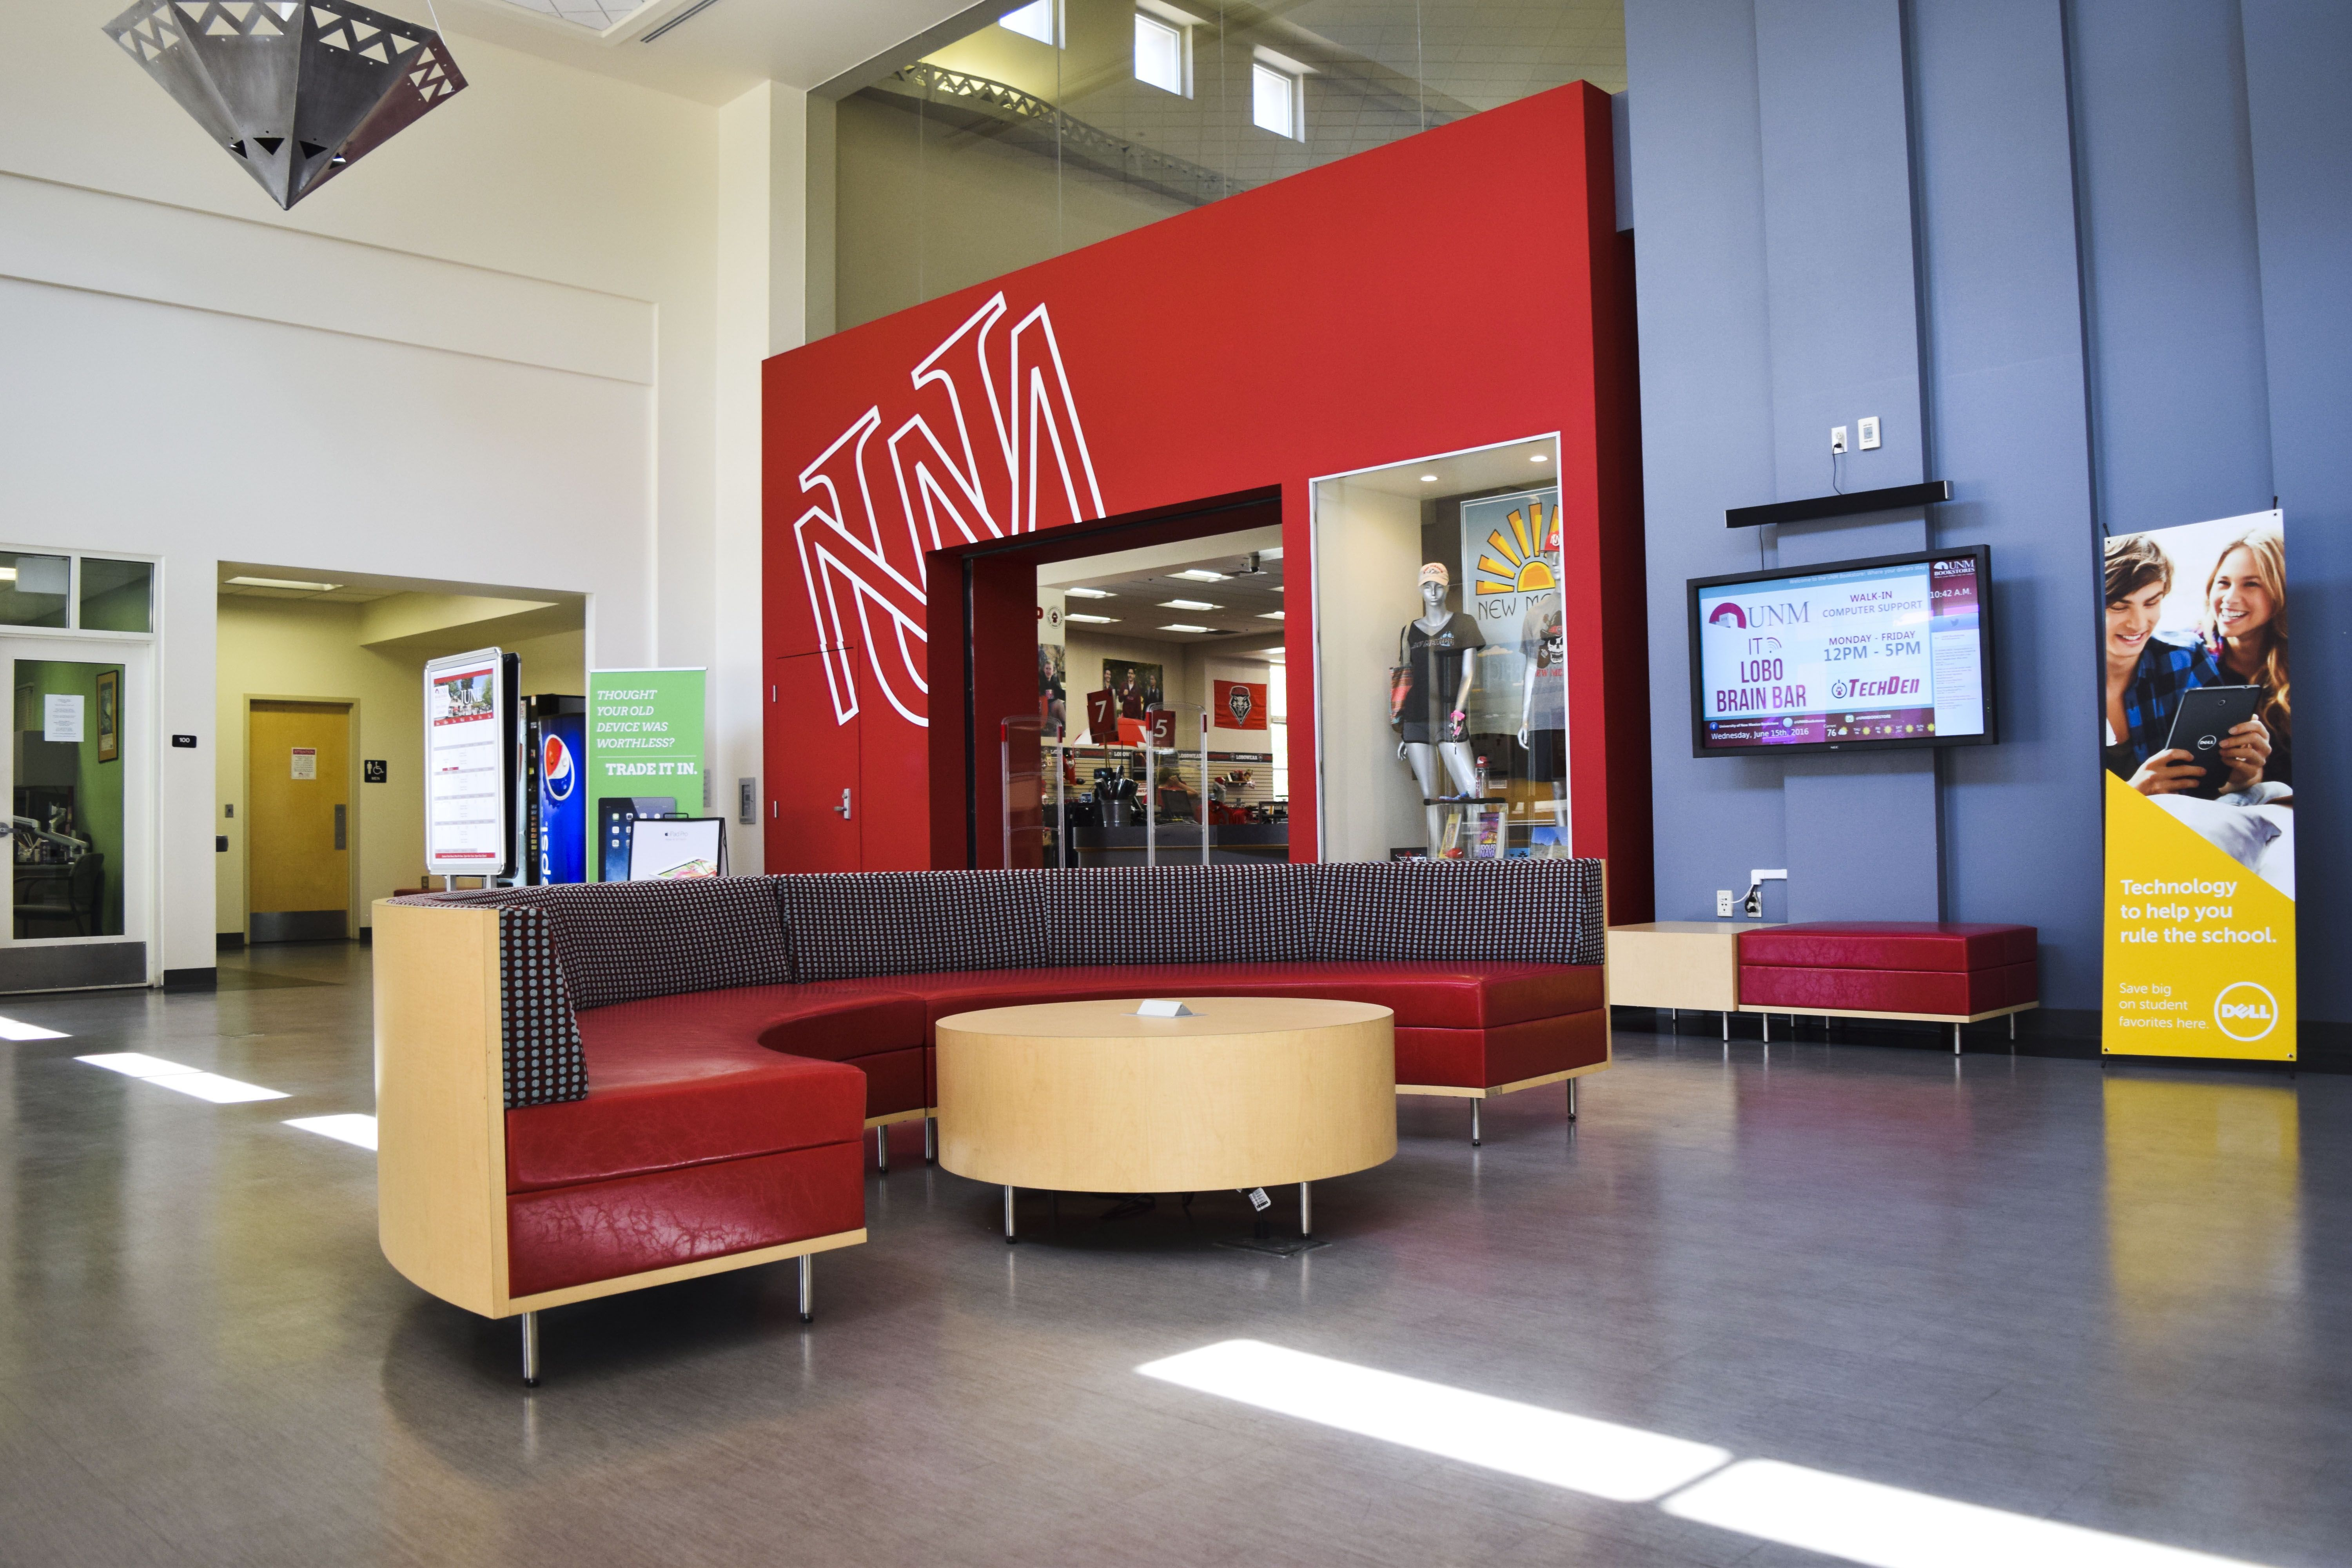 Unm Bookstore Lobby With Images University Of New Mexico